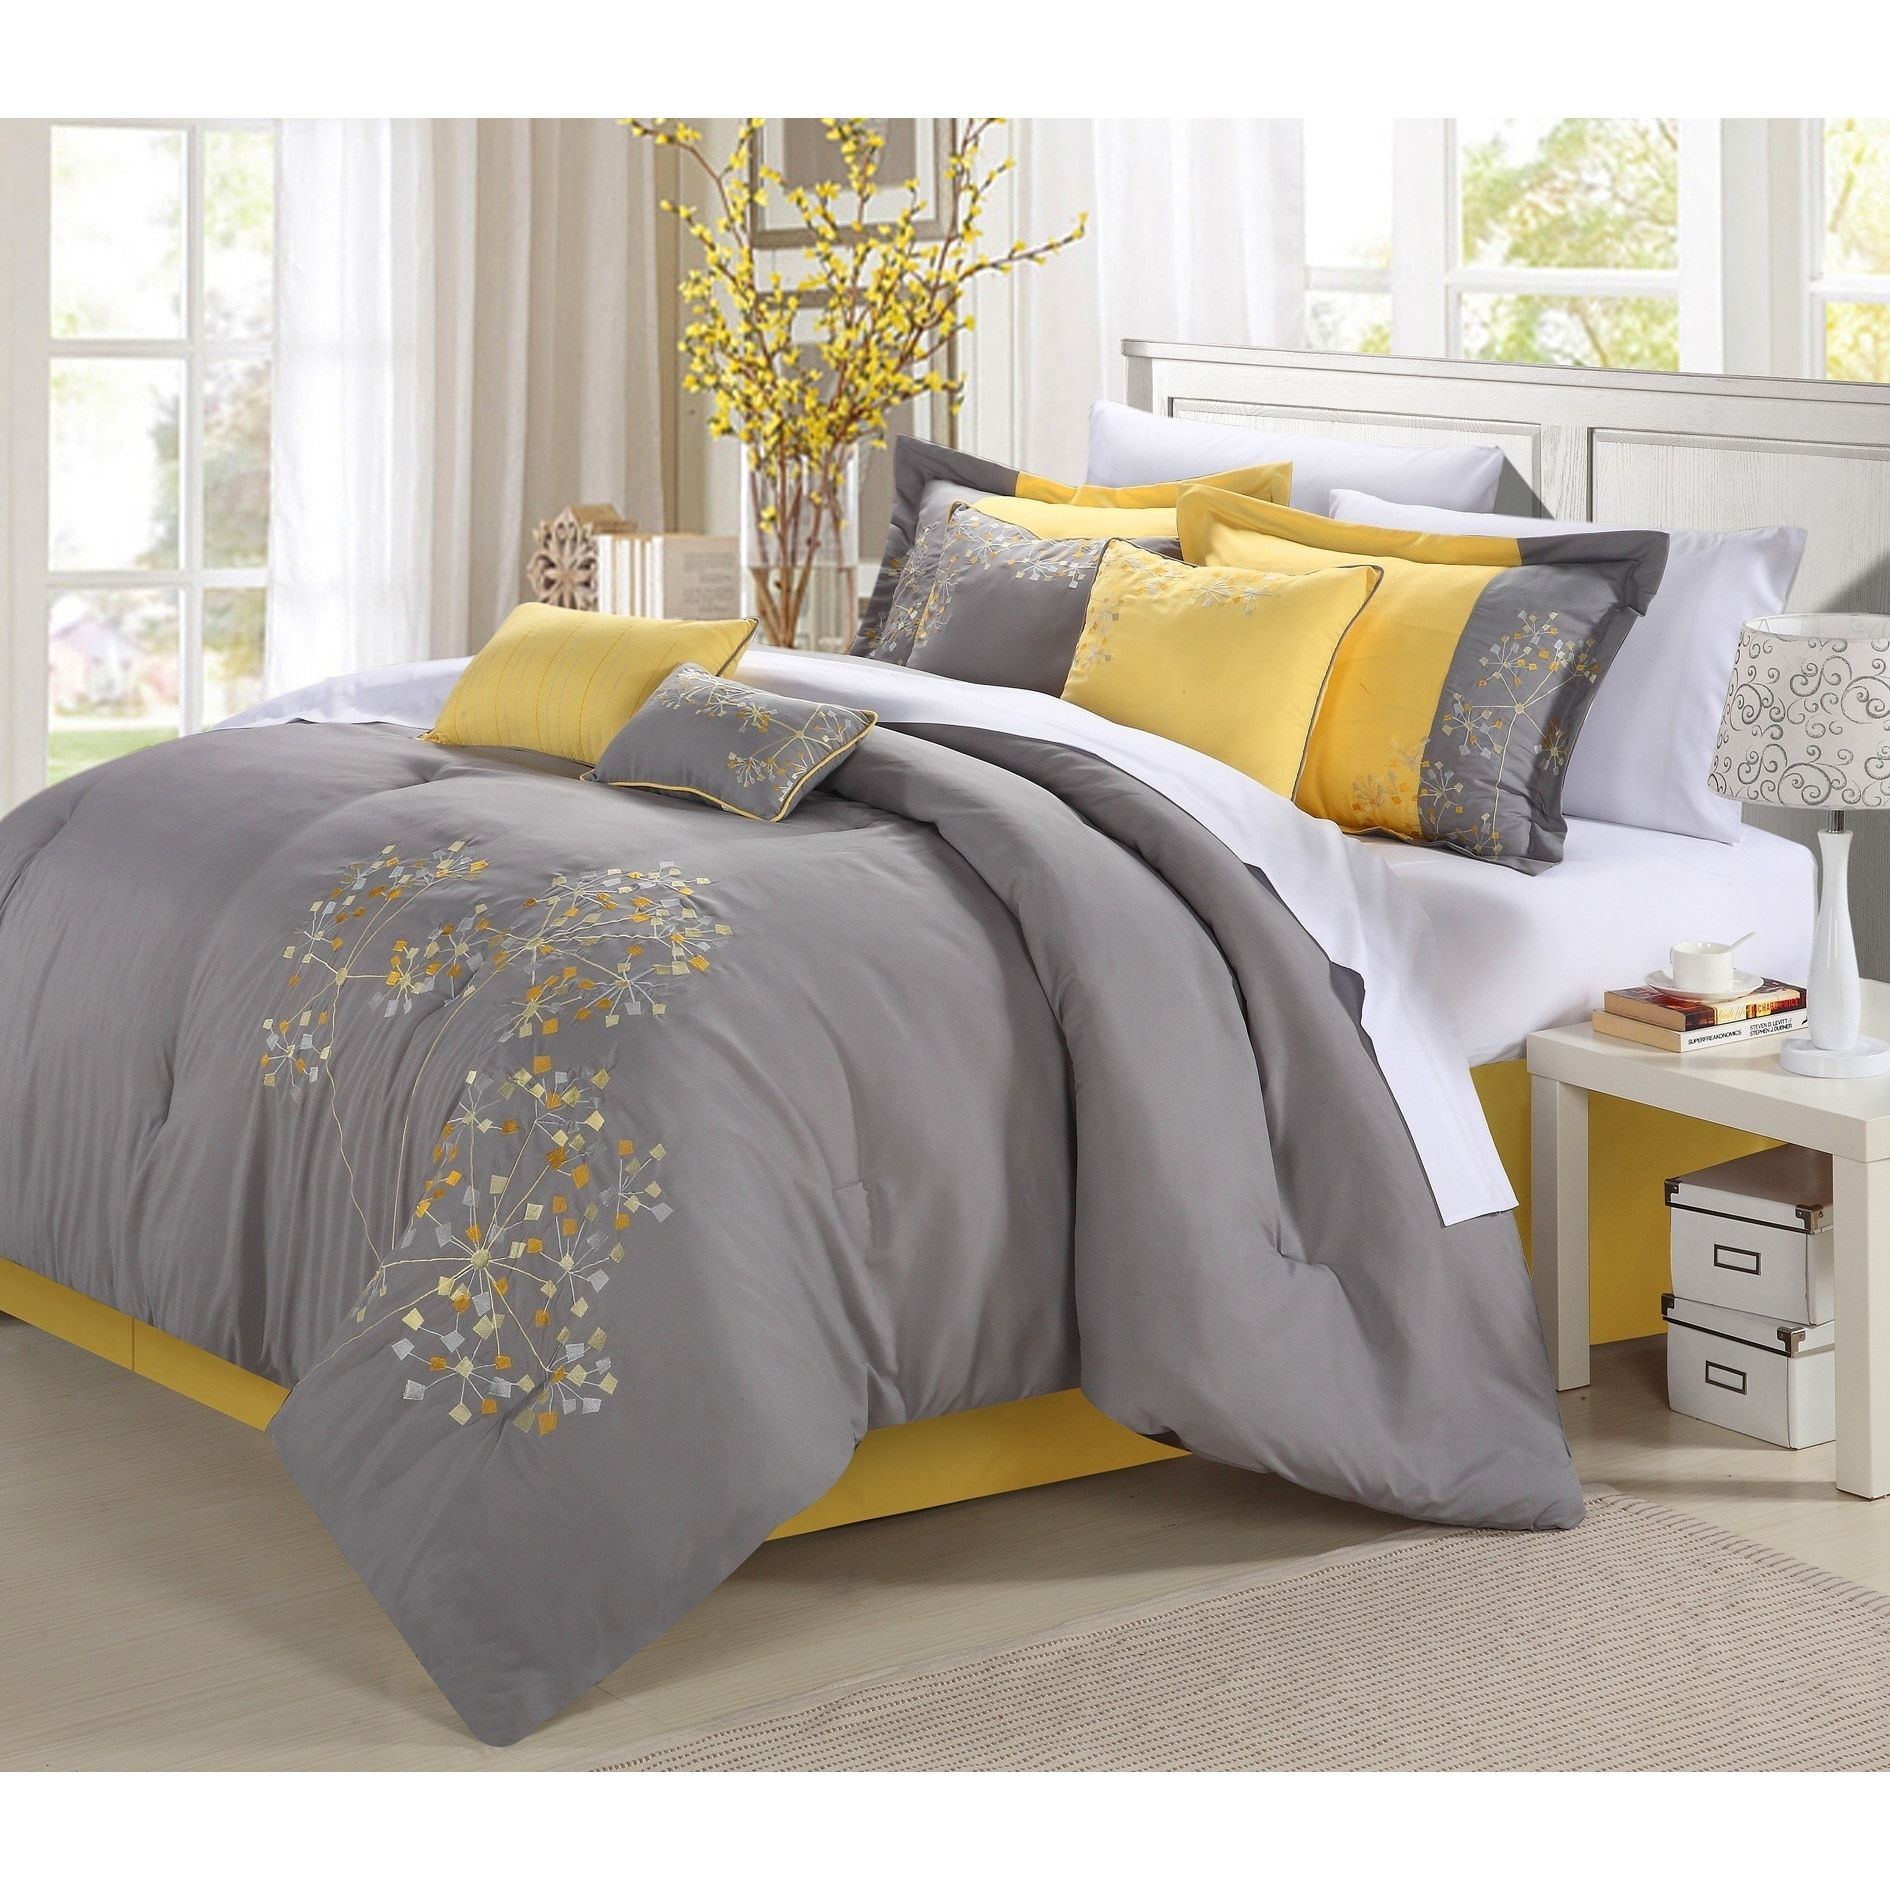 Chic Home Shea 12 Piece Yellow Embroidered Floral Comforter Set